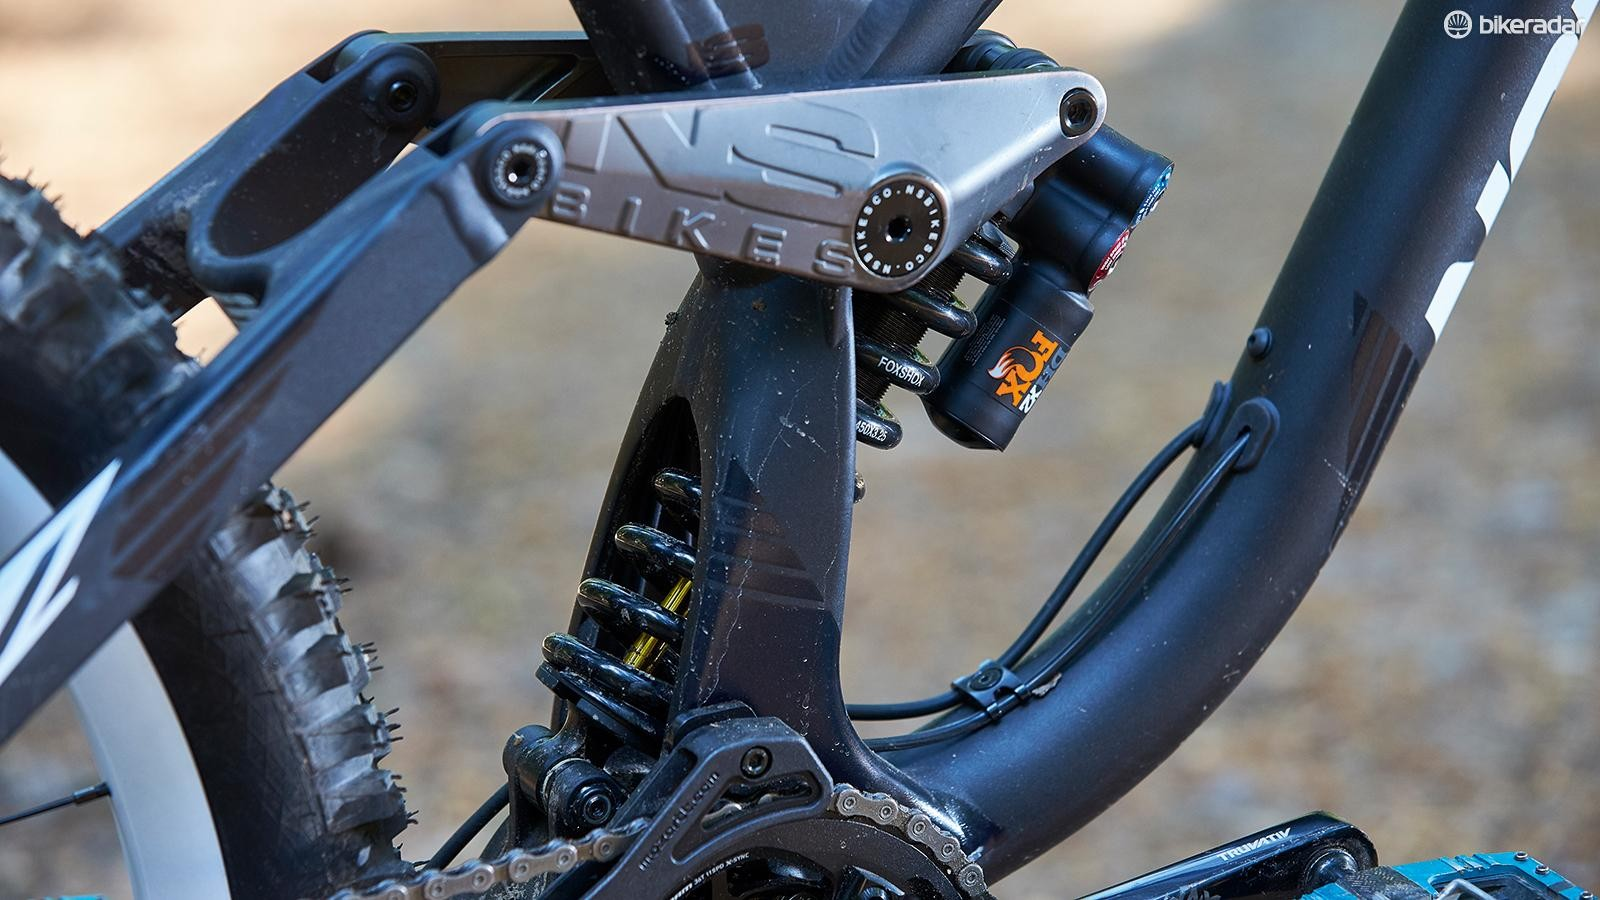 Our test bike had a 'Factory' shock but production models come with less adjustable 'Performance Elite' units